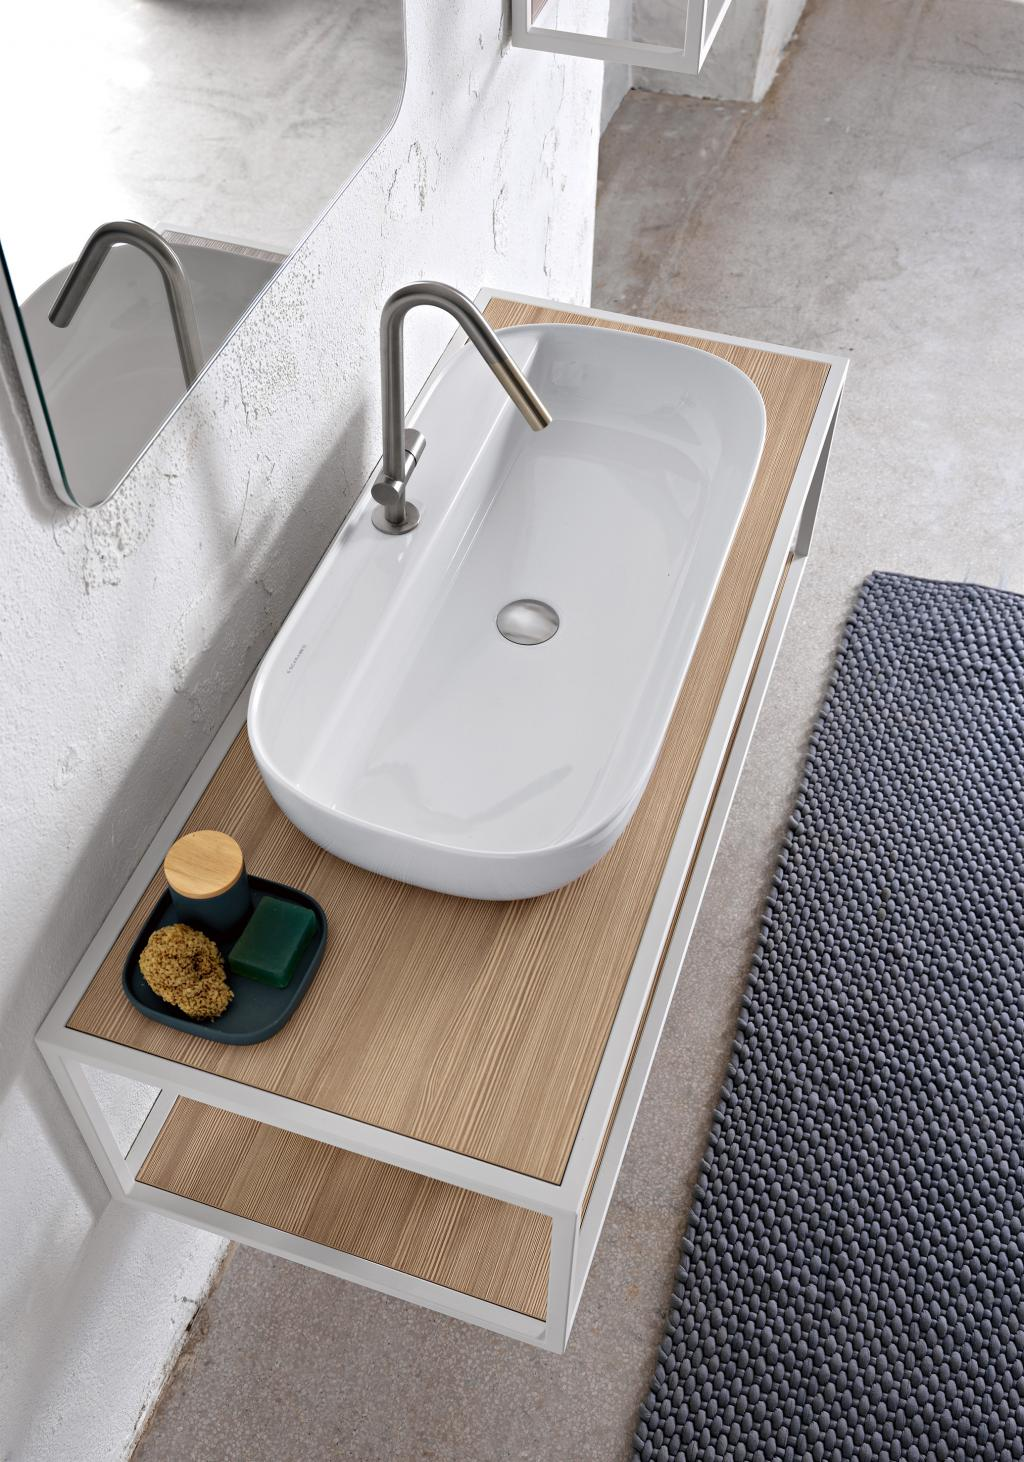 The clean design of GLAM makes the collection easy to integrate in multiple settings